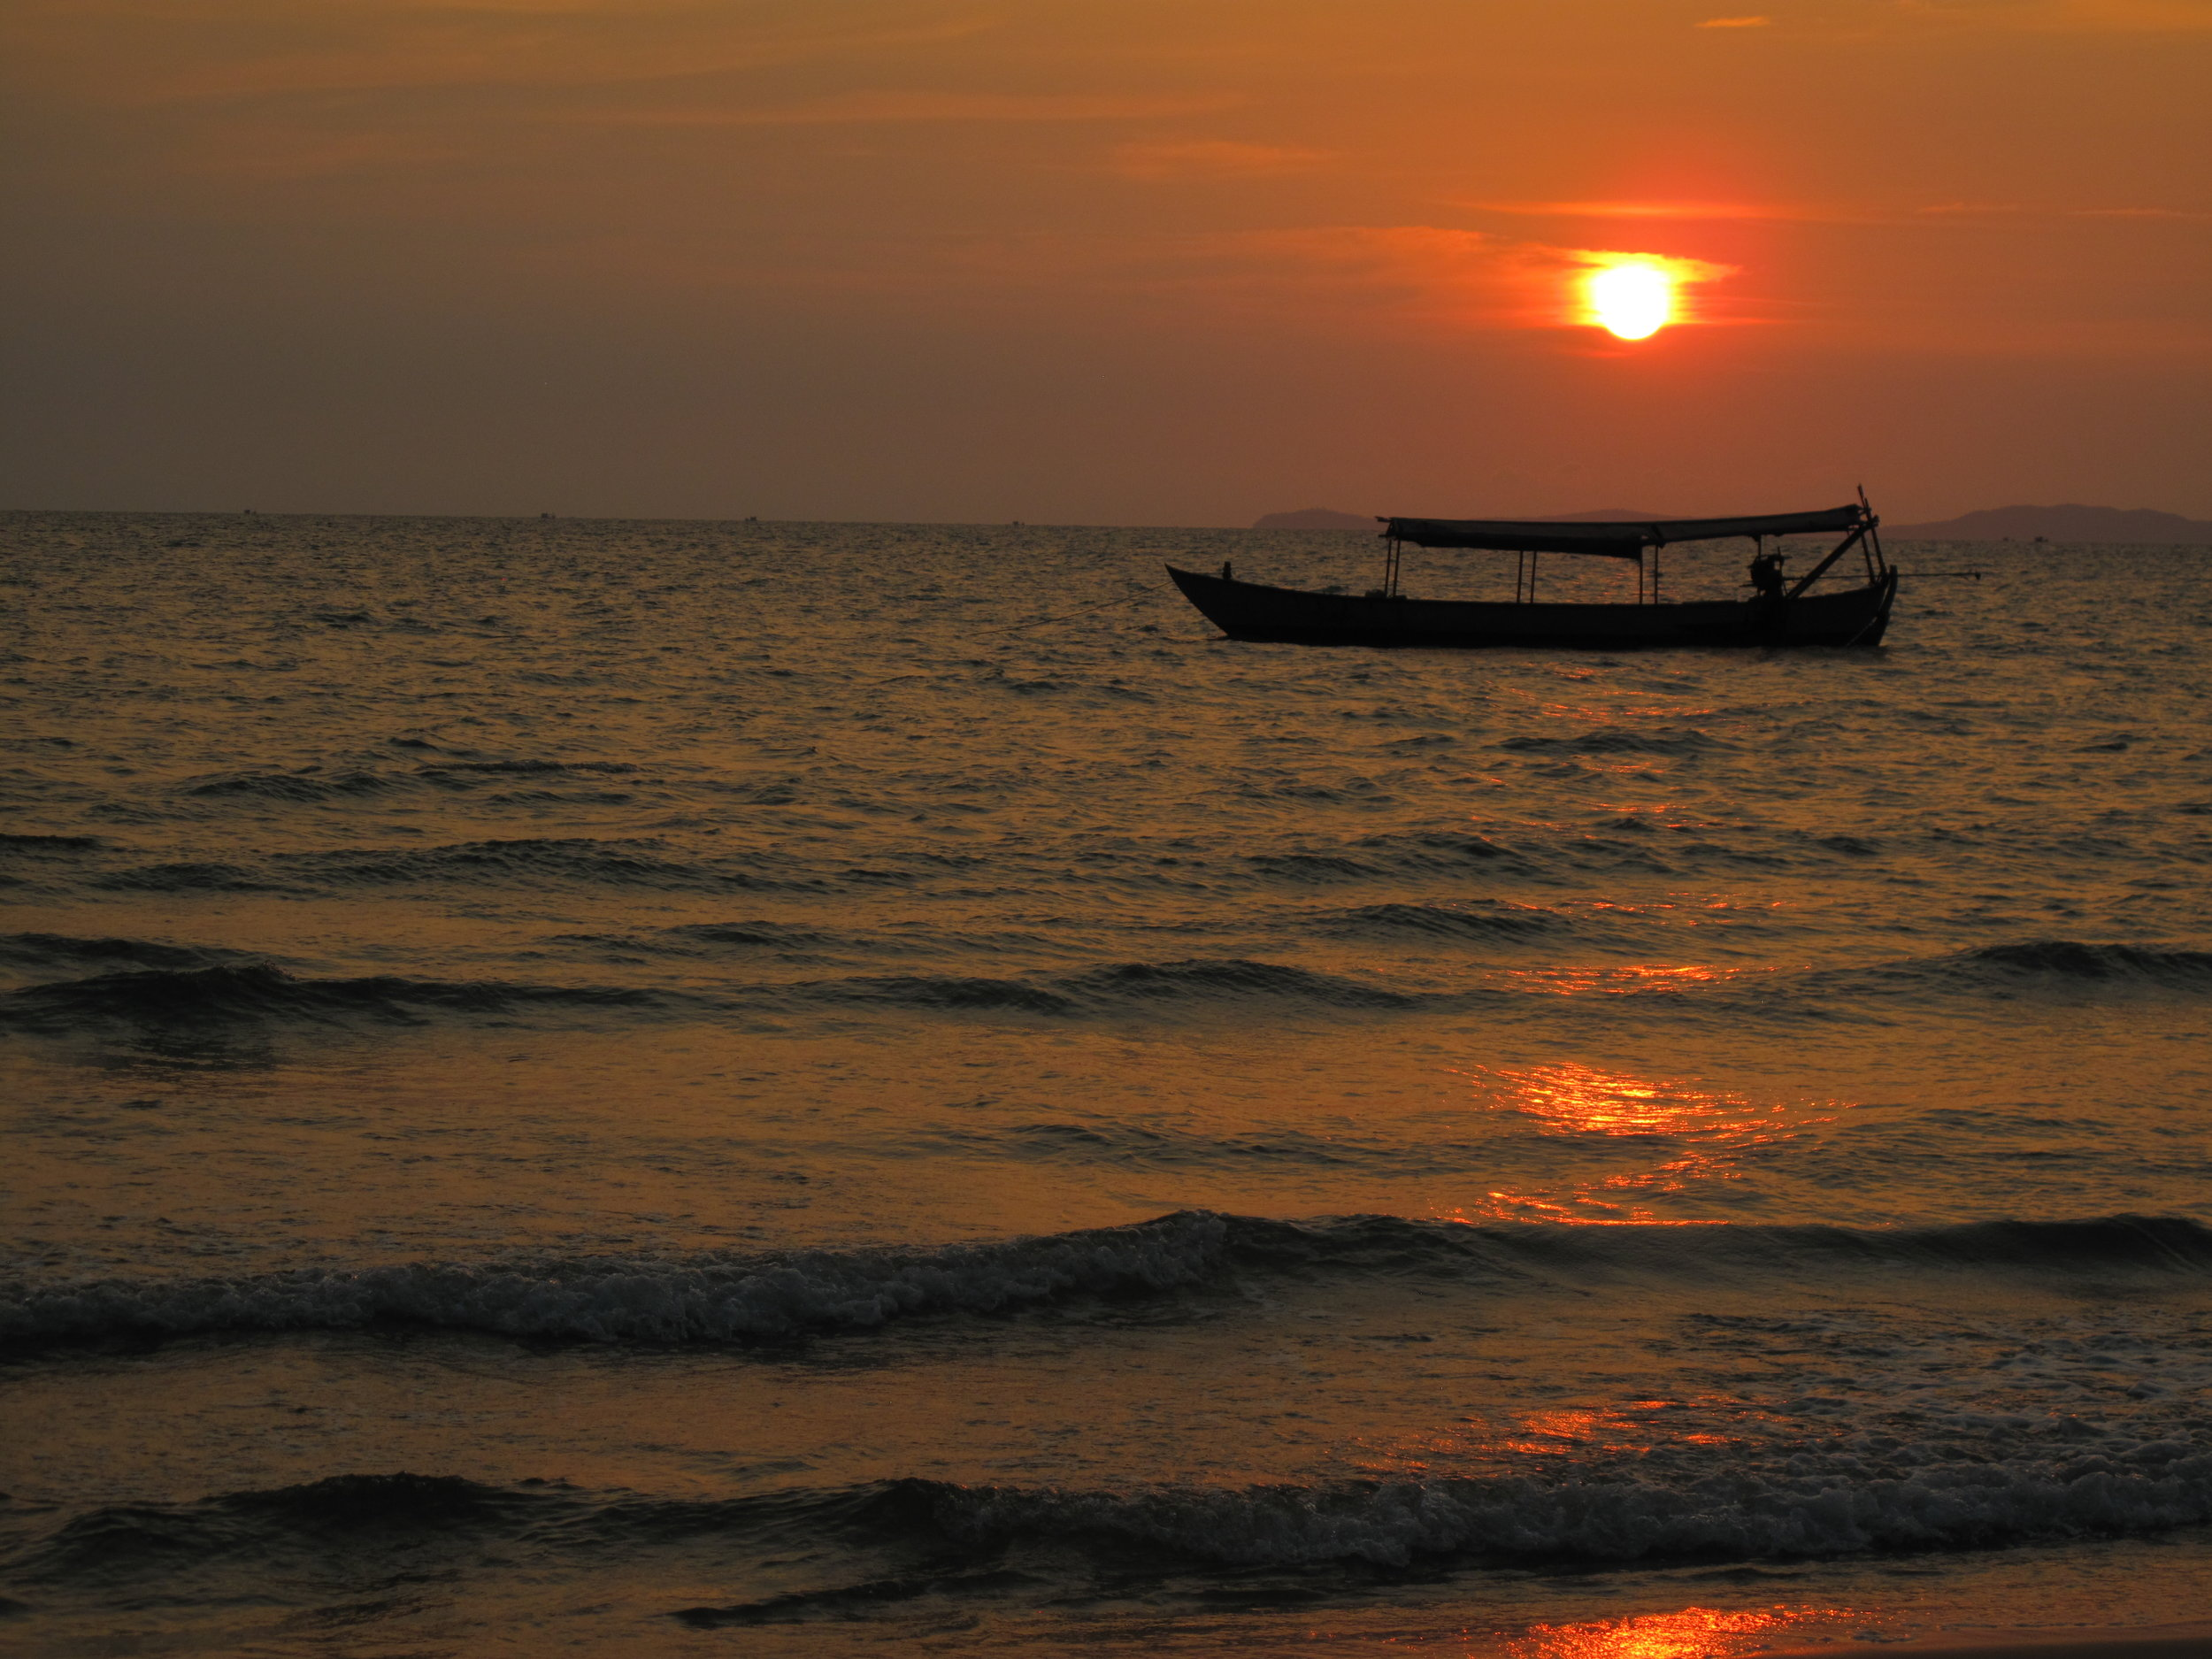 Our first sunset, Sihanoukville